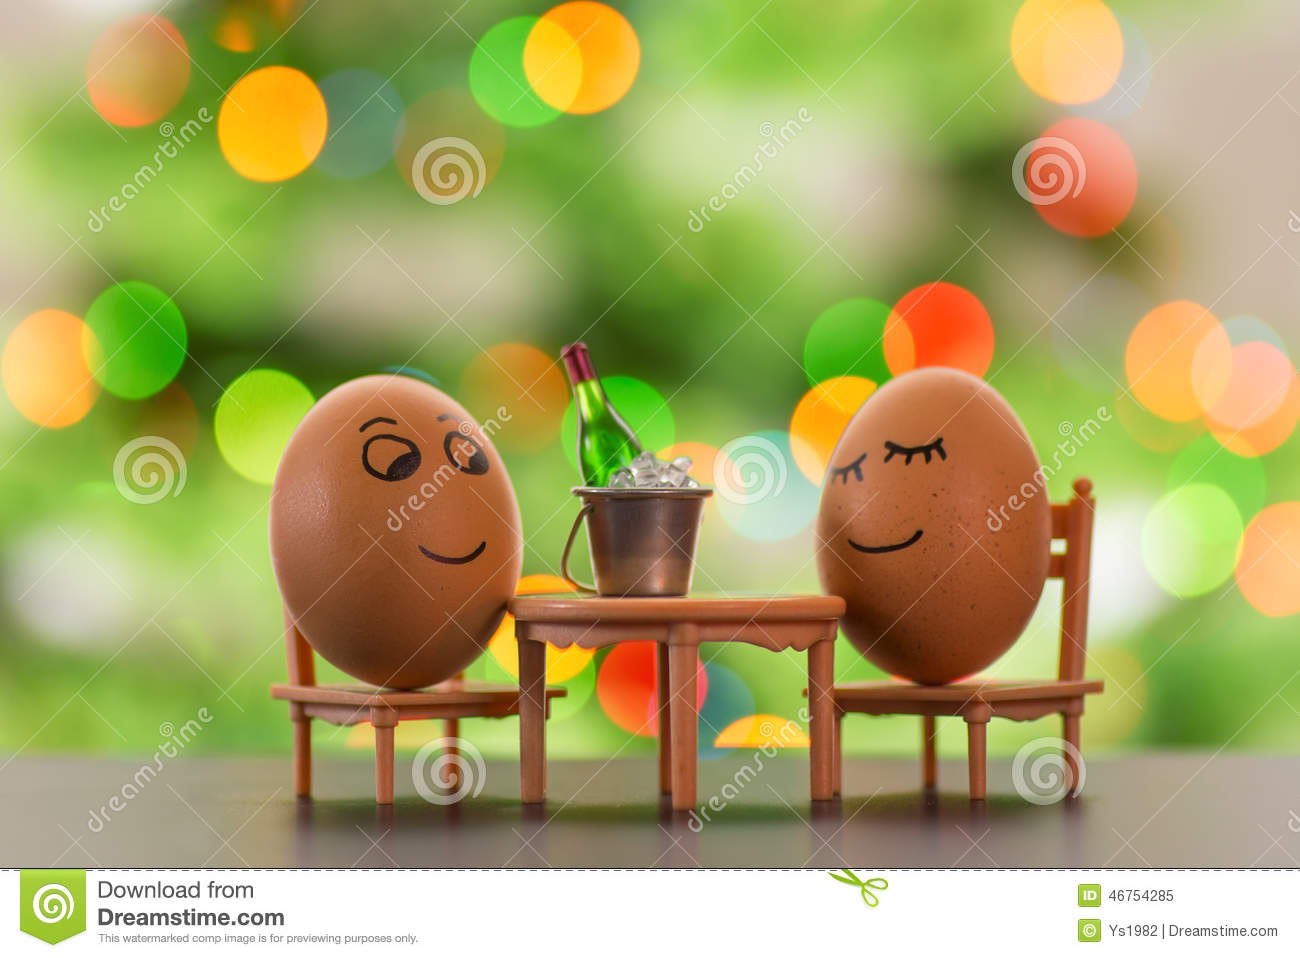 behind the chair app world market folding chairs funny eggs on a beach relaxing stock photo image